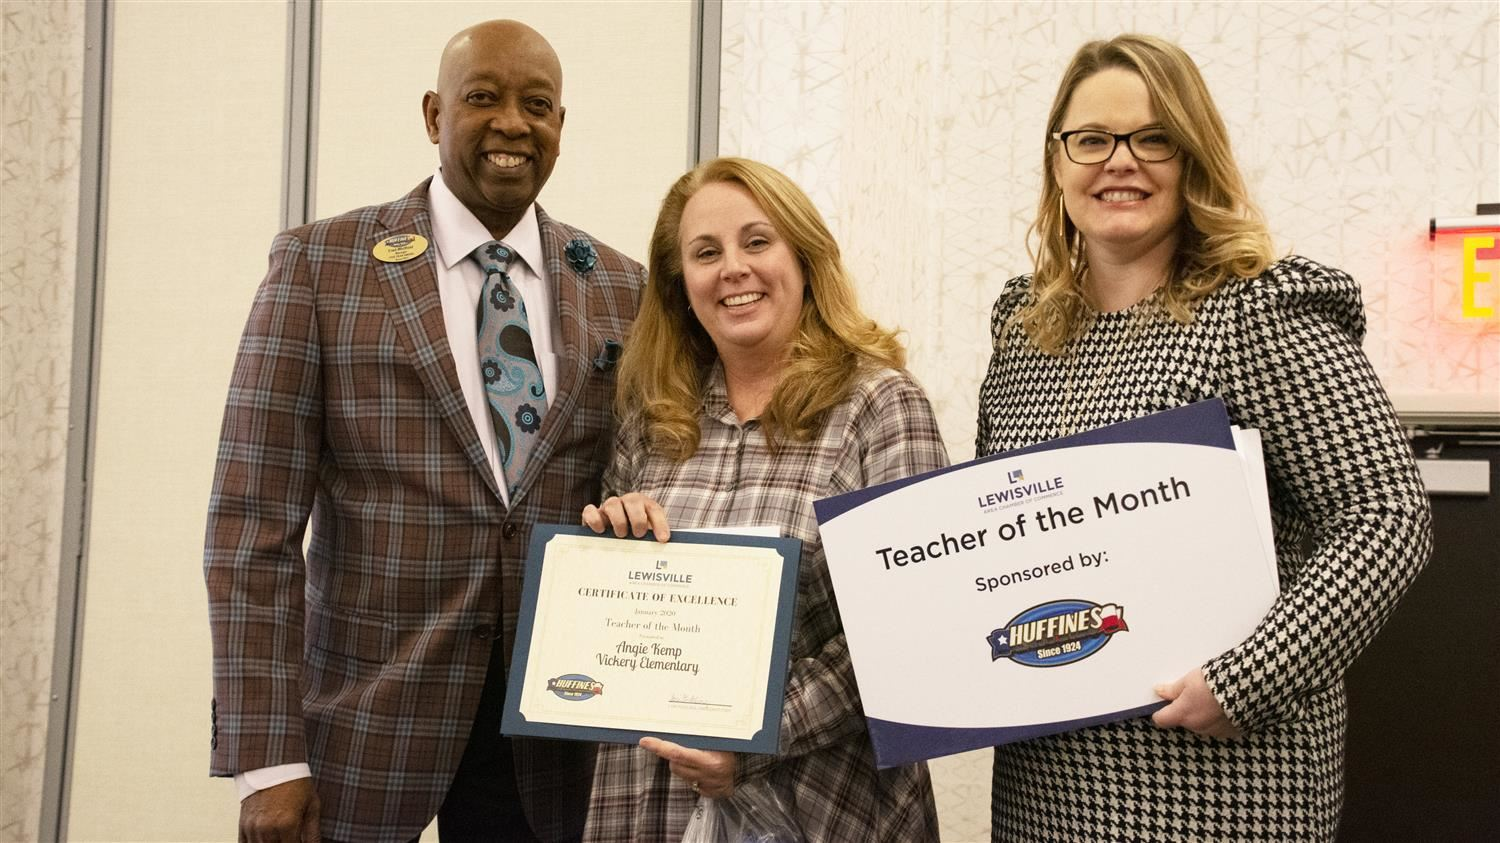 Vickery Elementary's Kemp Named Lewisville Area Chamber of Commerce/Huffines Auto Dealership January Teacher of the Month